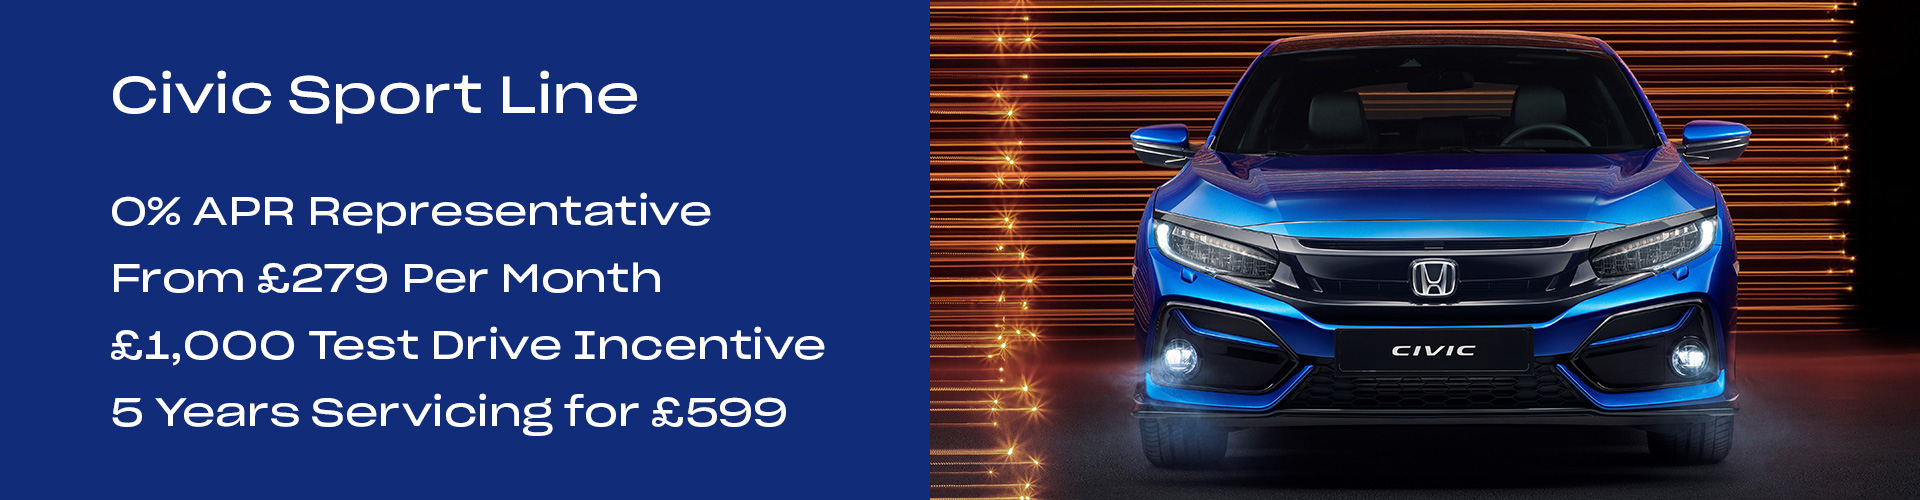 Civic Sport Line: 0% APR Representative, From £279 Per Month, £1,000 Test Drive Incentive, 5 Years Servicing for £599